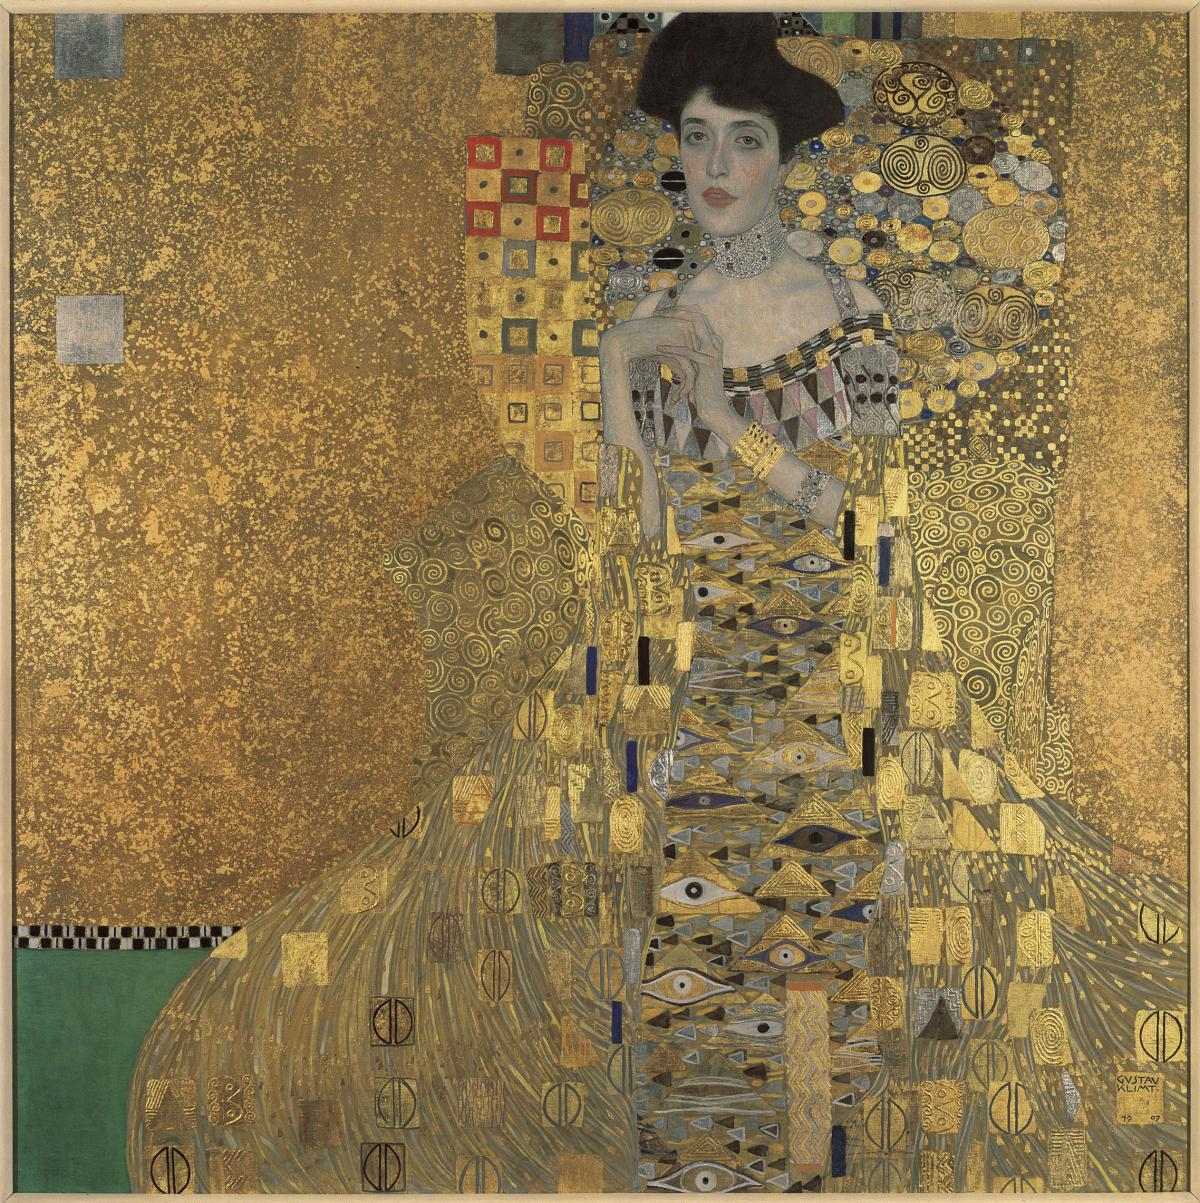 Gustav Klimt's 1907 portrait of Adele Bloch-Bauer was seized by the Nazis at the outset of World War II. A film starring Helen Mirren now tells the story of Adele's niece, who fought to recover her family's paintings more than a half century later.